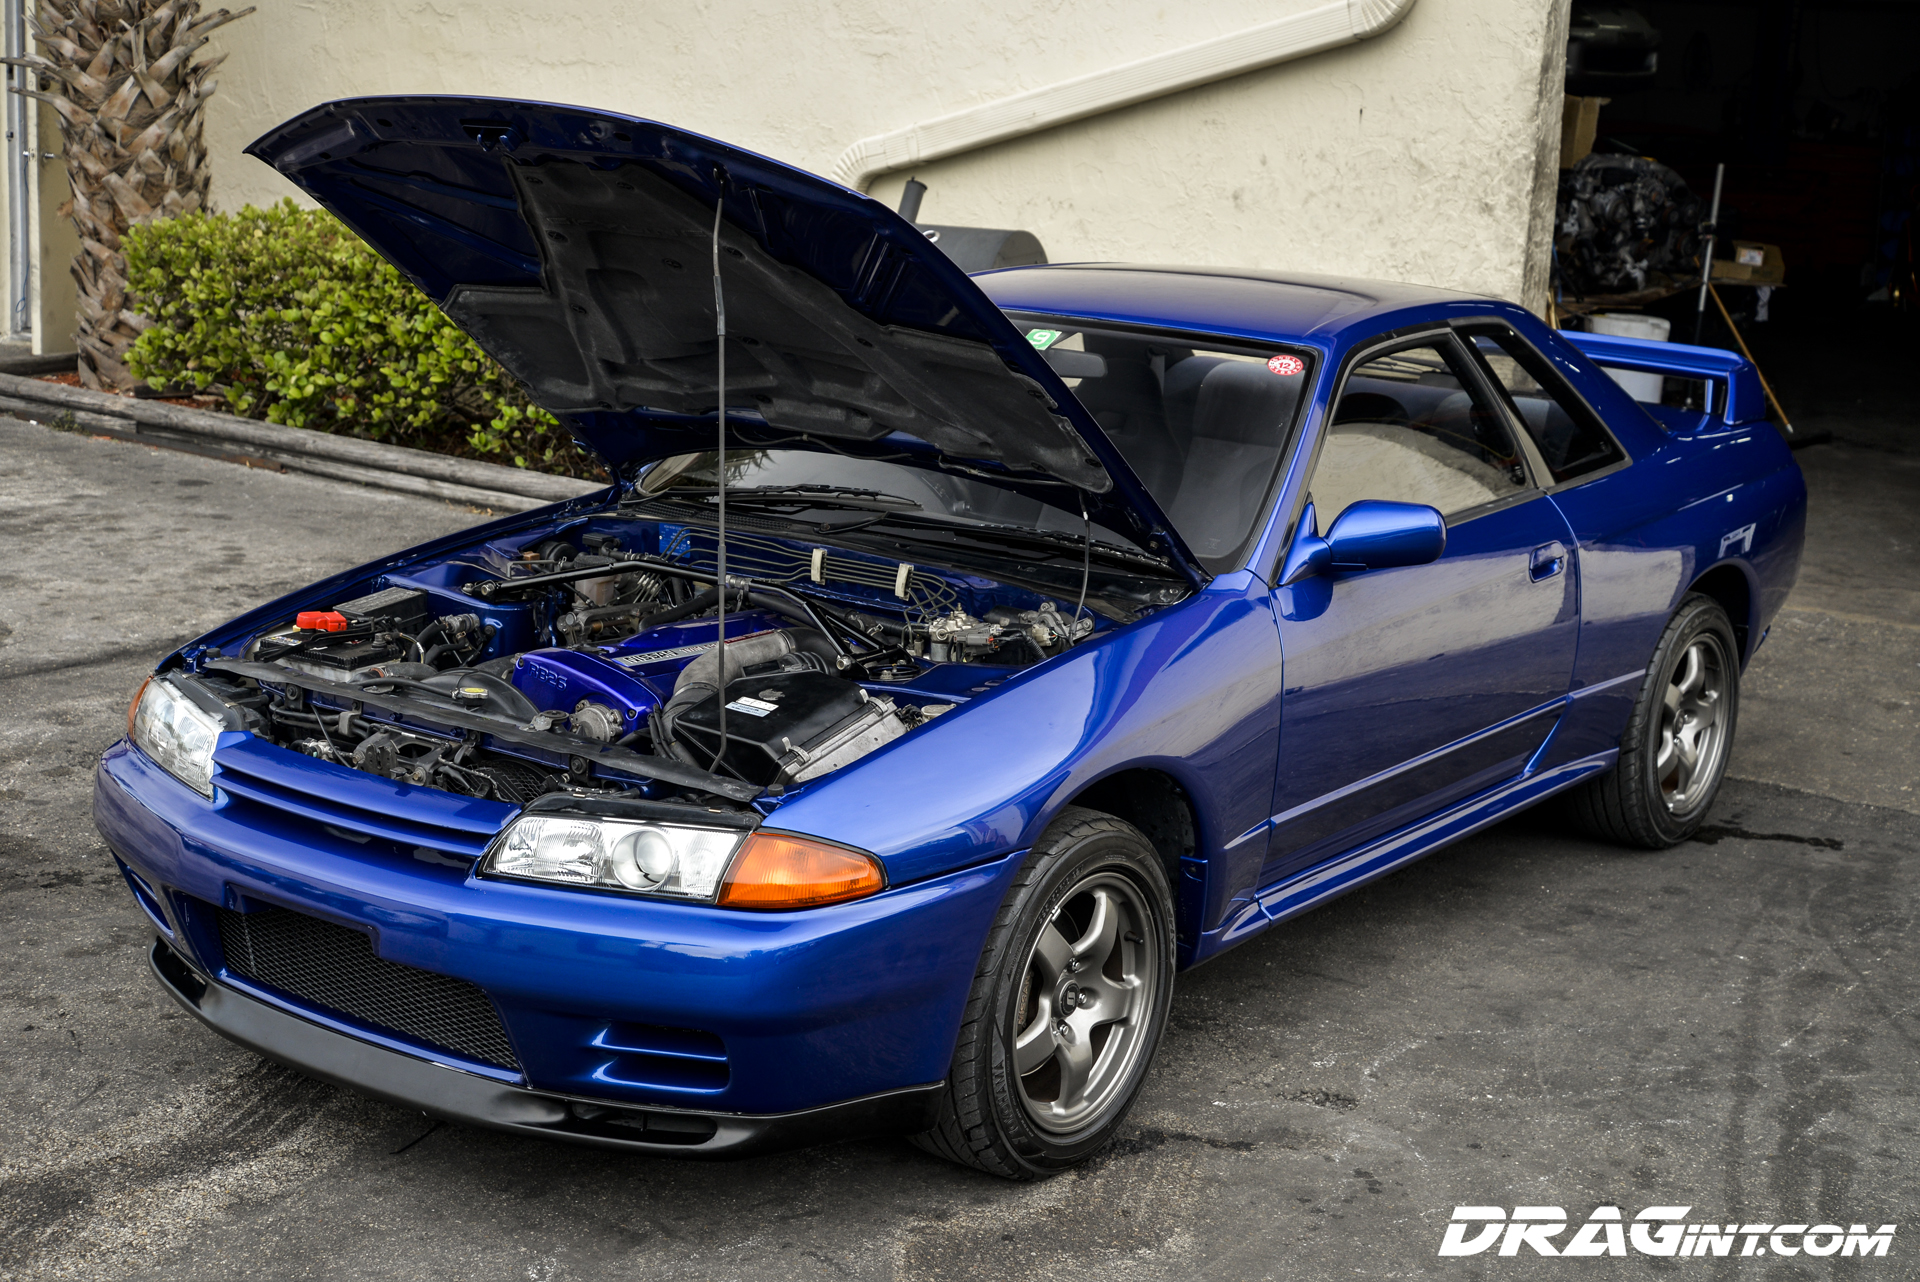 Nissan Gtr Godzilla >> JDM Import : R32 Skyline GTR in Best Blue Ever! | DRAG